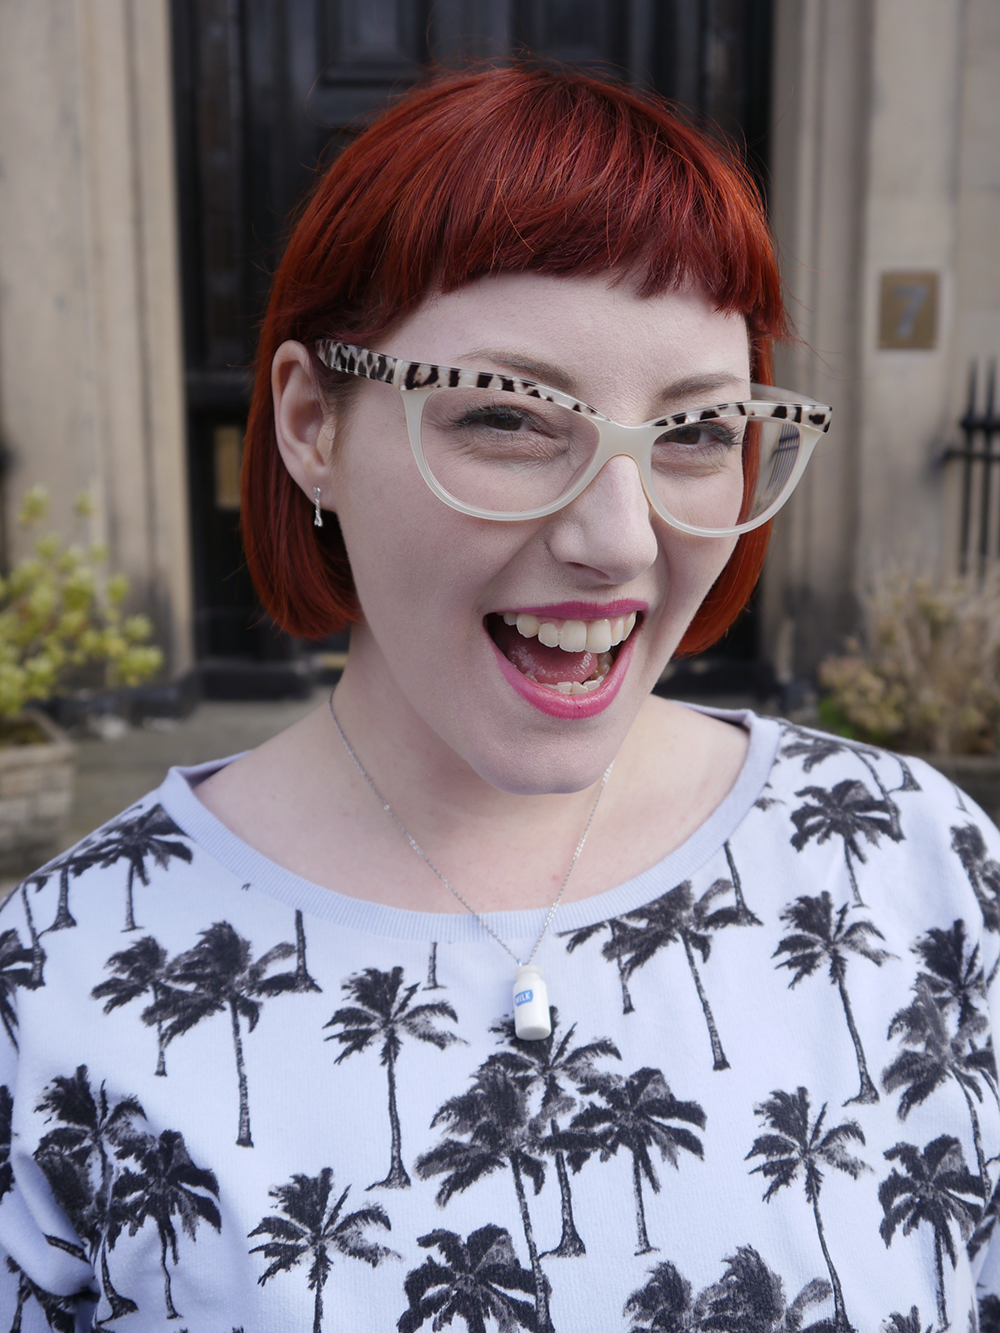 Scottish blogger, Edinburgh blogger, Scottish street style, quirky street style, dressing to a theme, food inspired outfit, pale girl style, Spex Pistols glasses, red head, red hair, H&M, patterned jumper, palm tree sweatshirt, white pleated dress, white boots, lace up shoes, milk necklace, Tiny Treat Boutique necklace, milk bottle jewellery, Lucky Dip Club, wear what you want